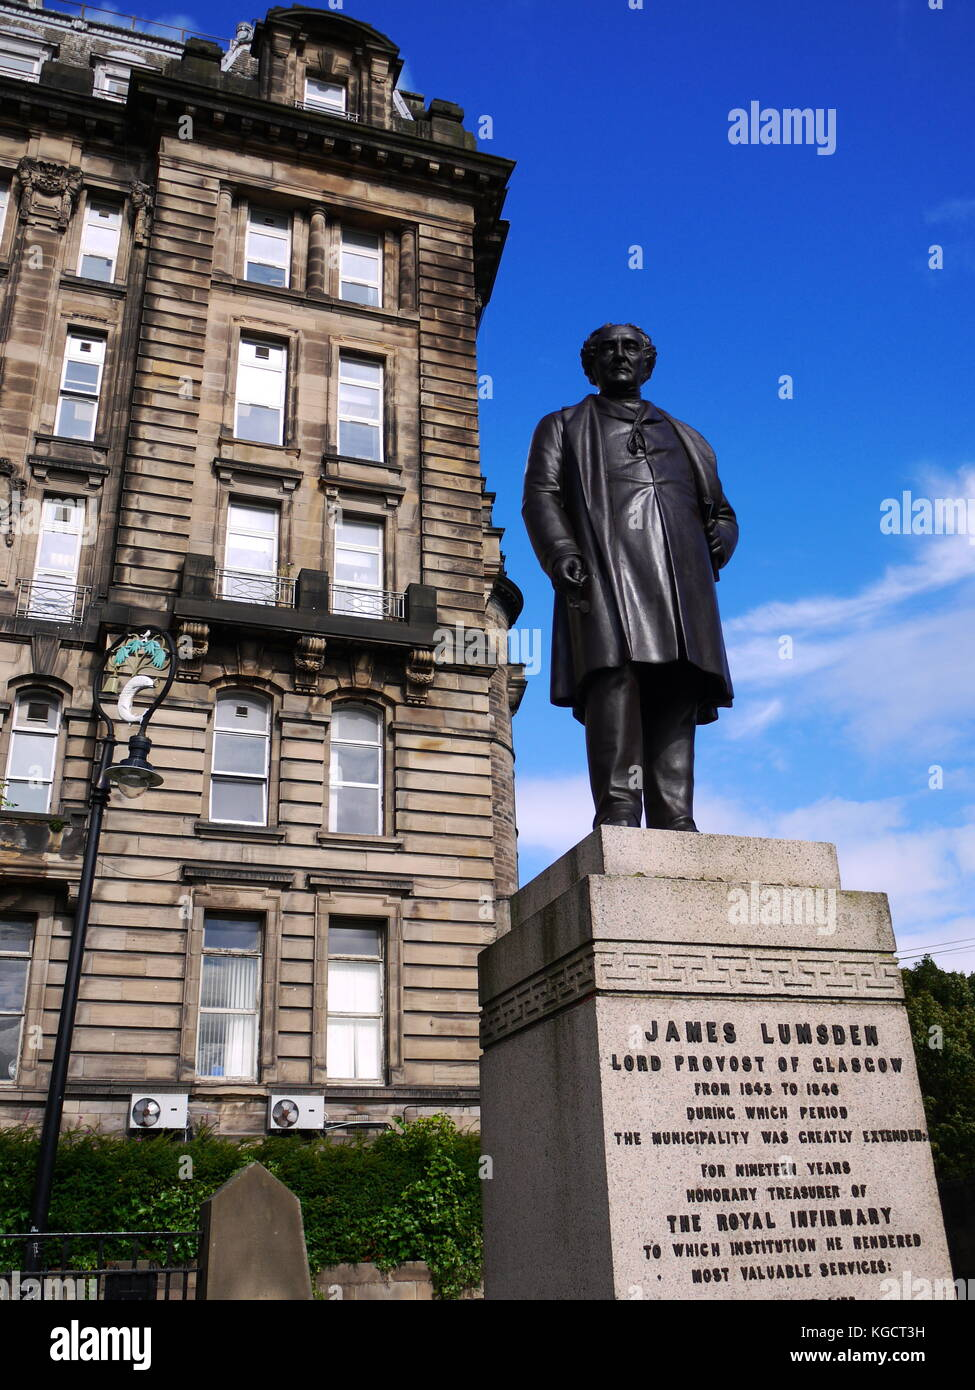 Statue of James Lumsden Catedral Square, Glasgow - Stock Image